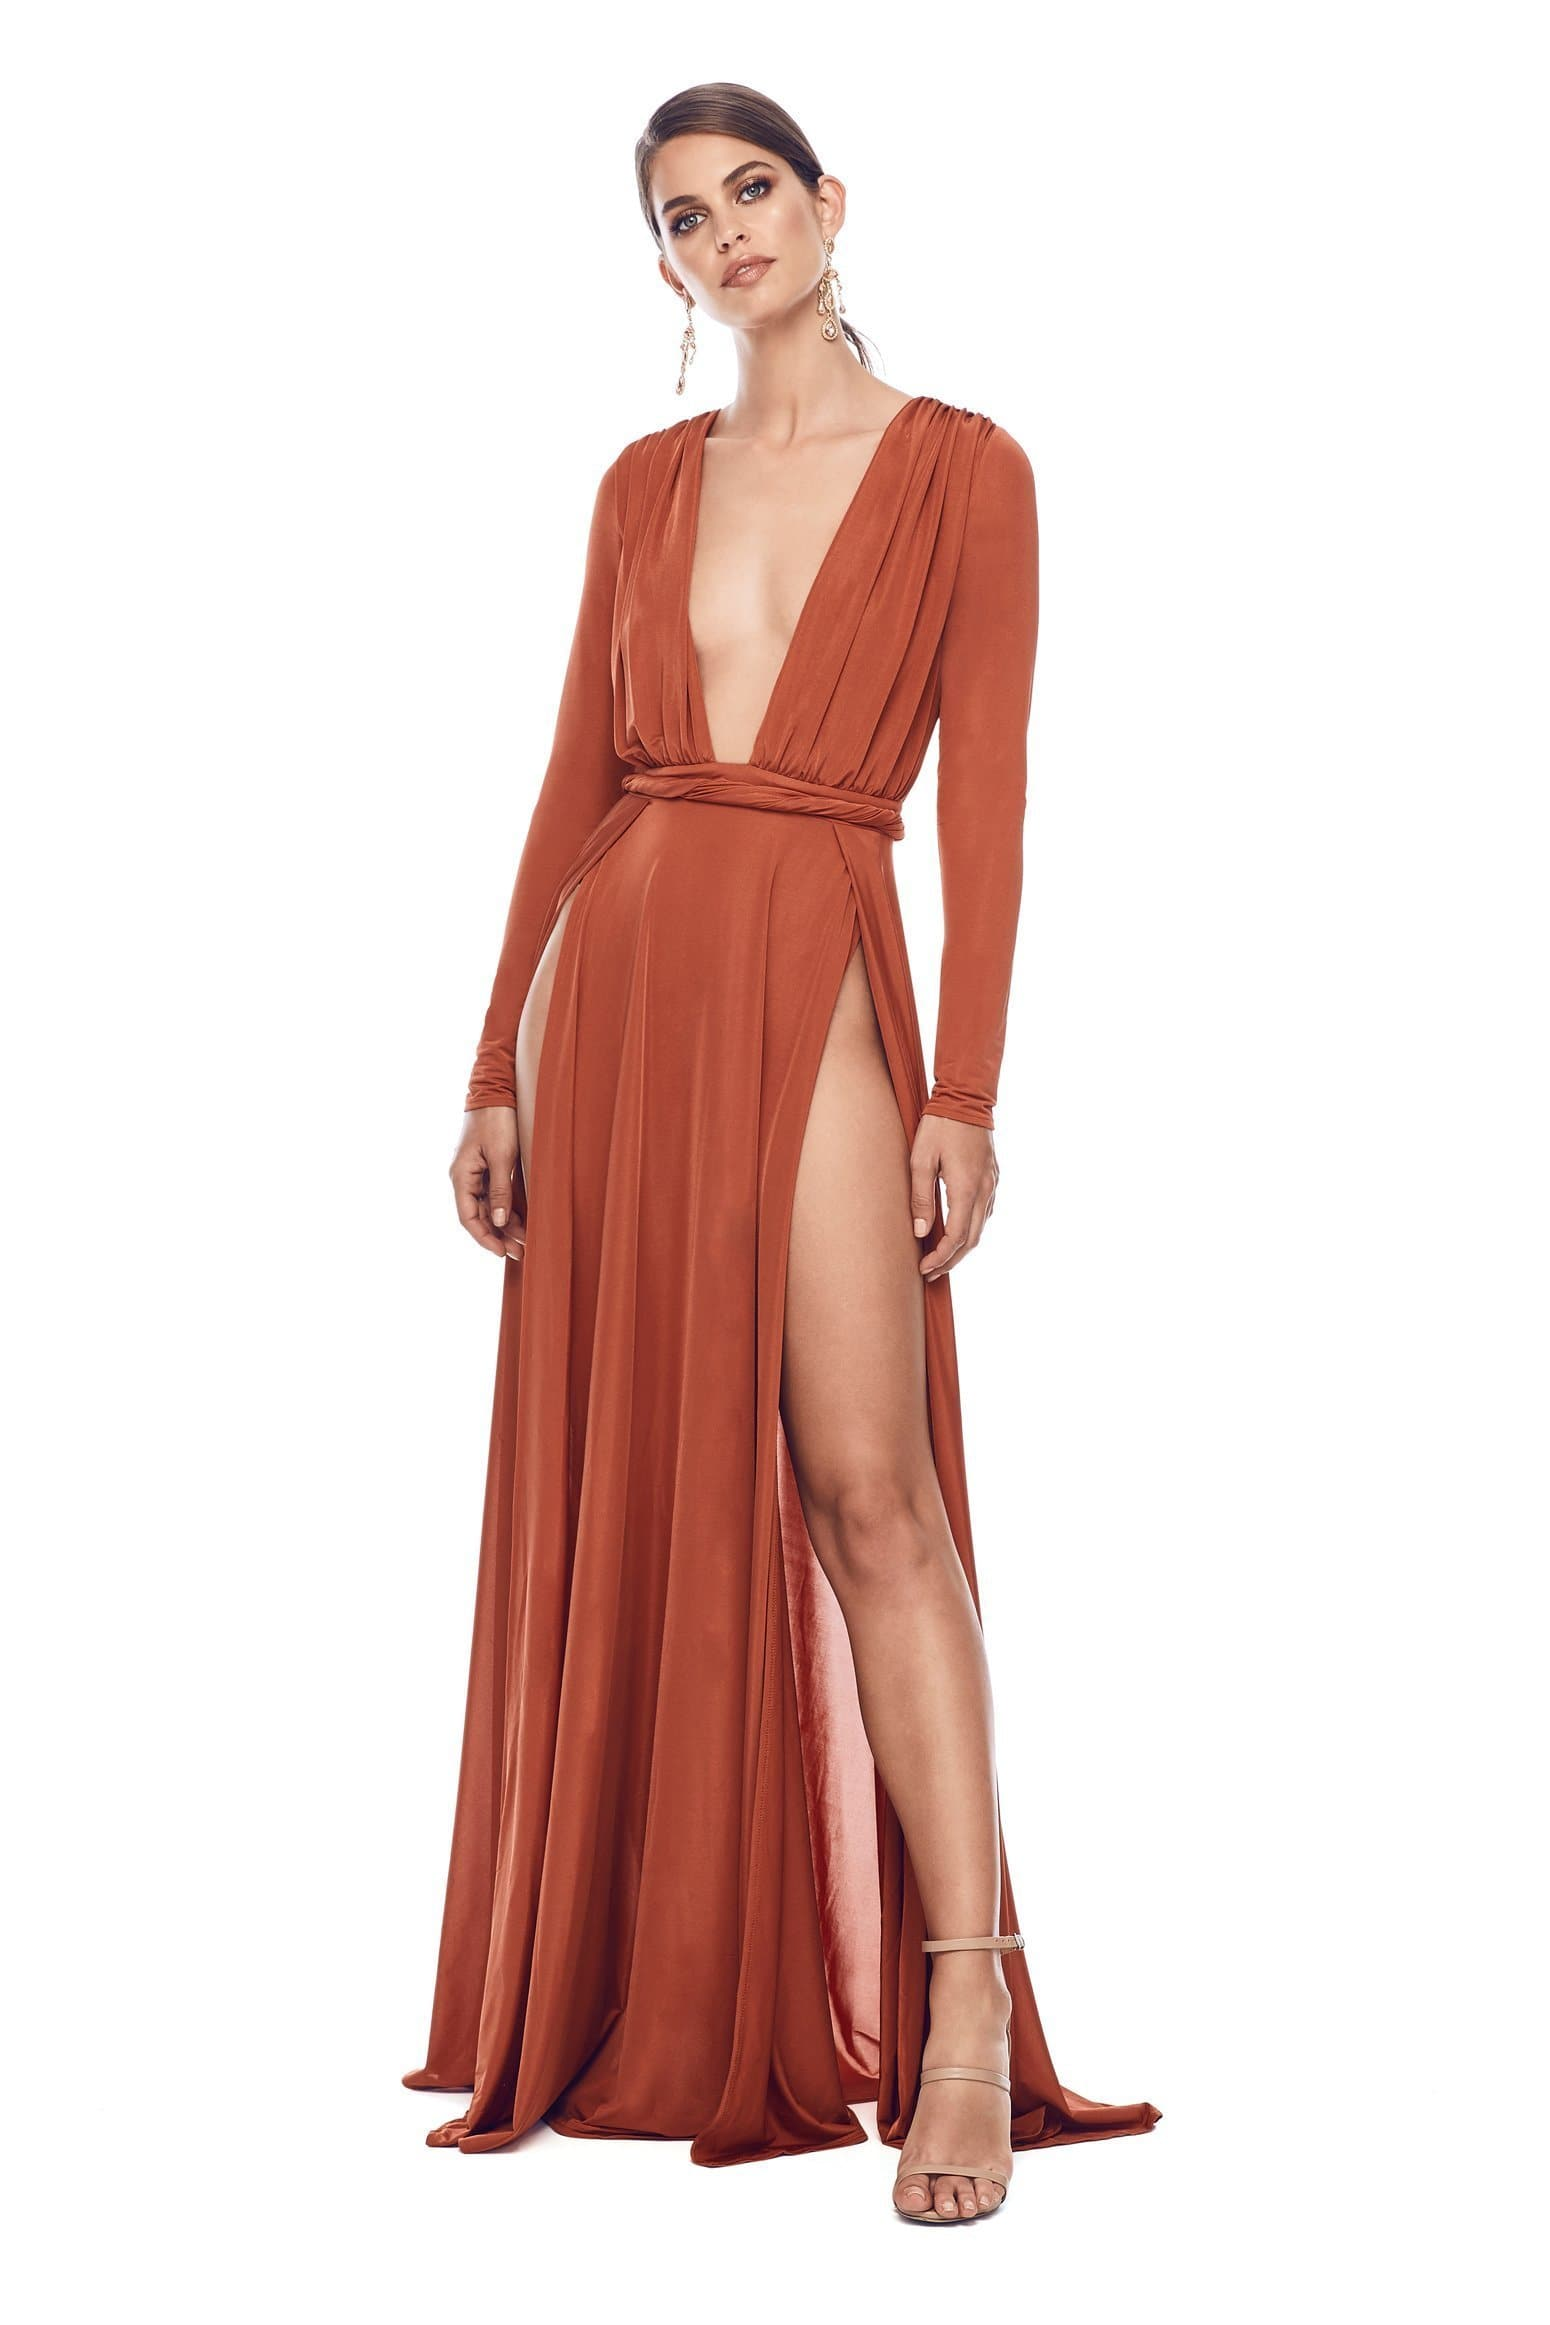 Sahara Gown - Golden Rust Jersey Long Sleeve Deep Plunge Slits Dress